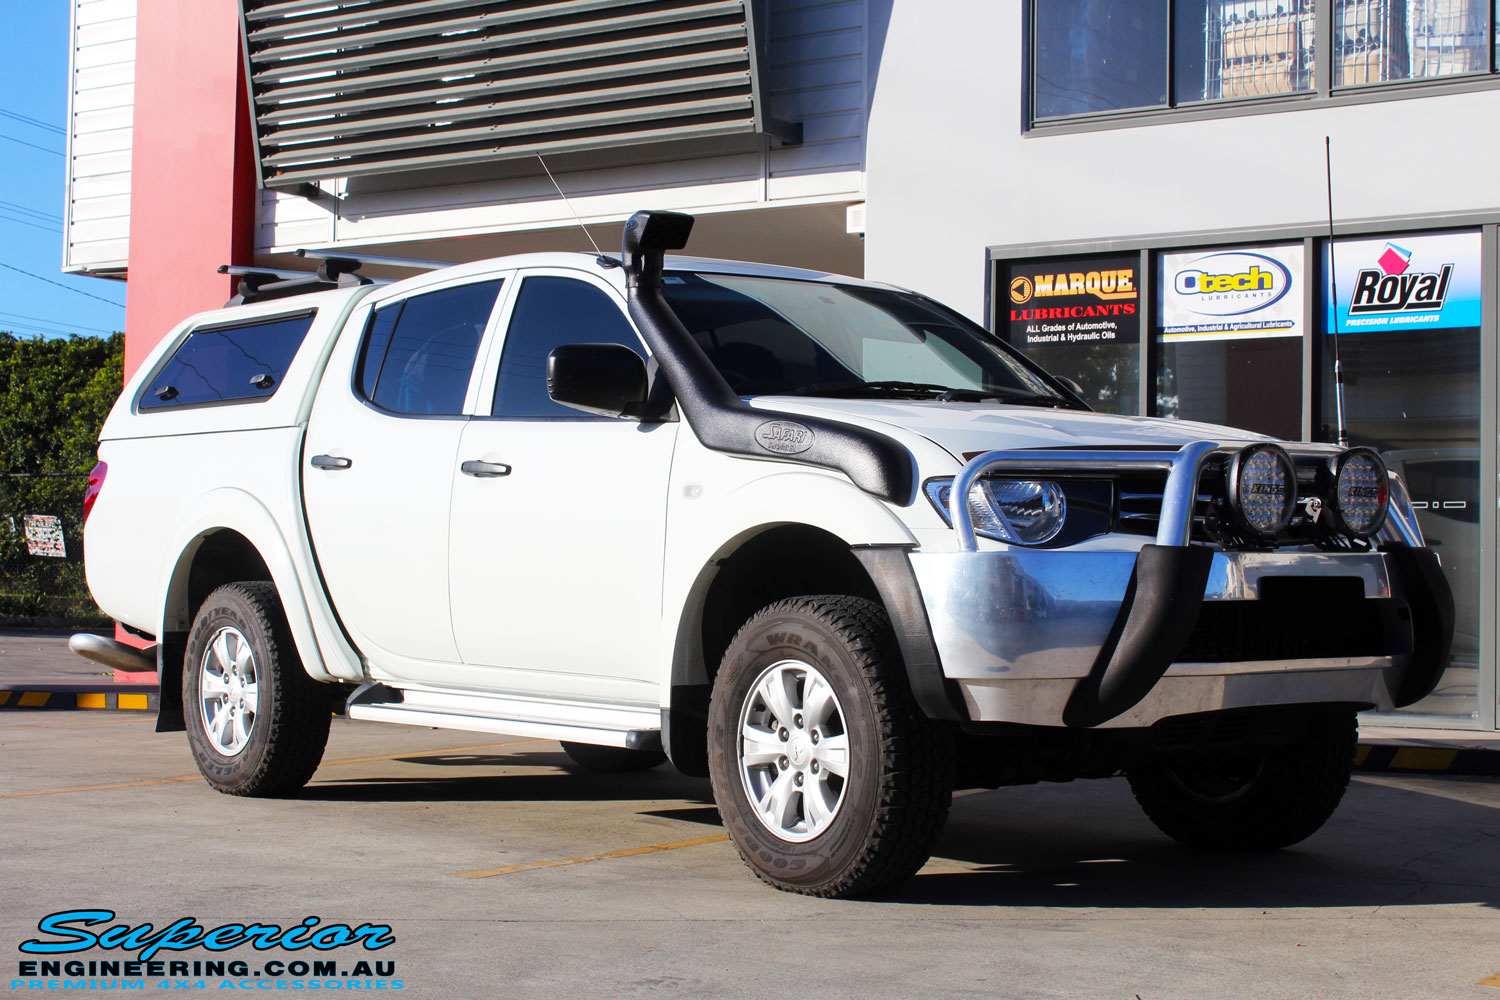 Right front side view of a Mitsubishi MN Triton in White On The Hoist @ Superior Engineering Deception Bay Showroom